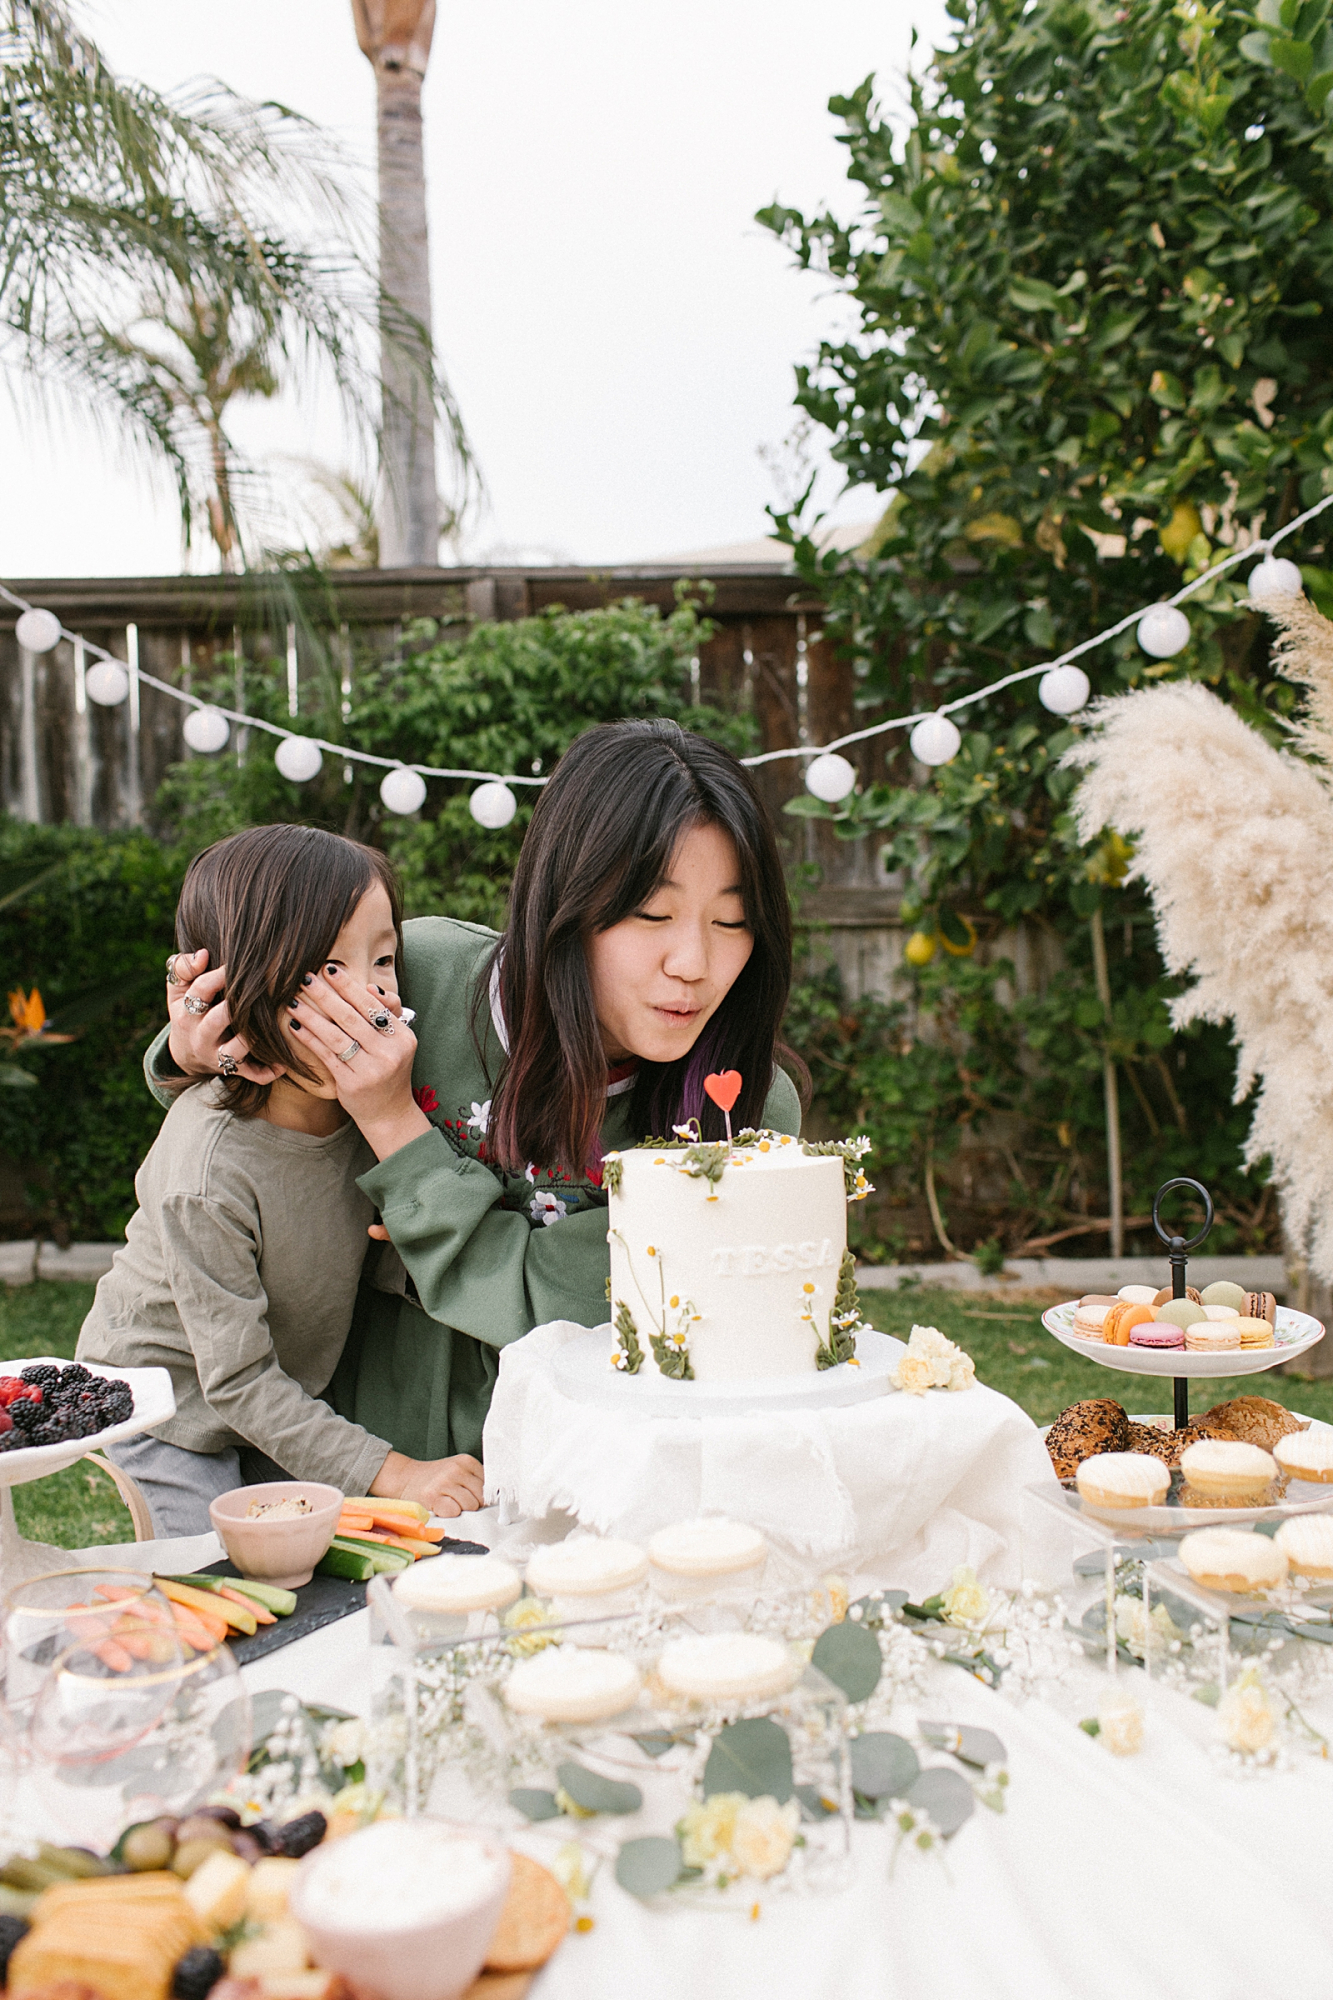 small outdoor birthday party